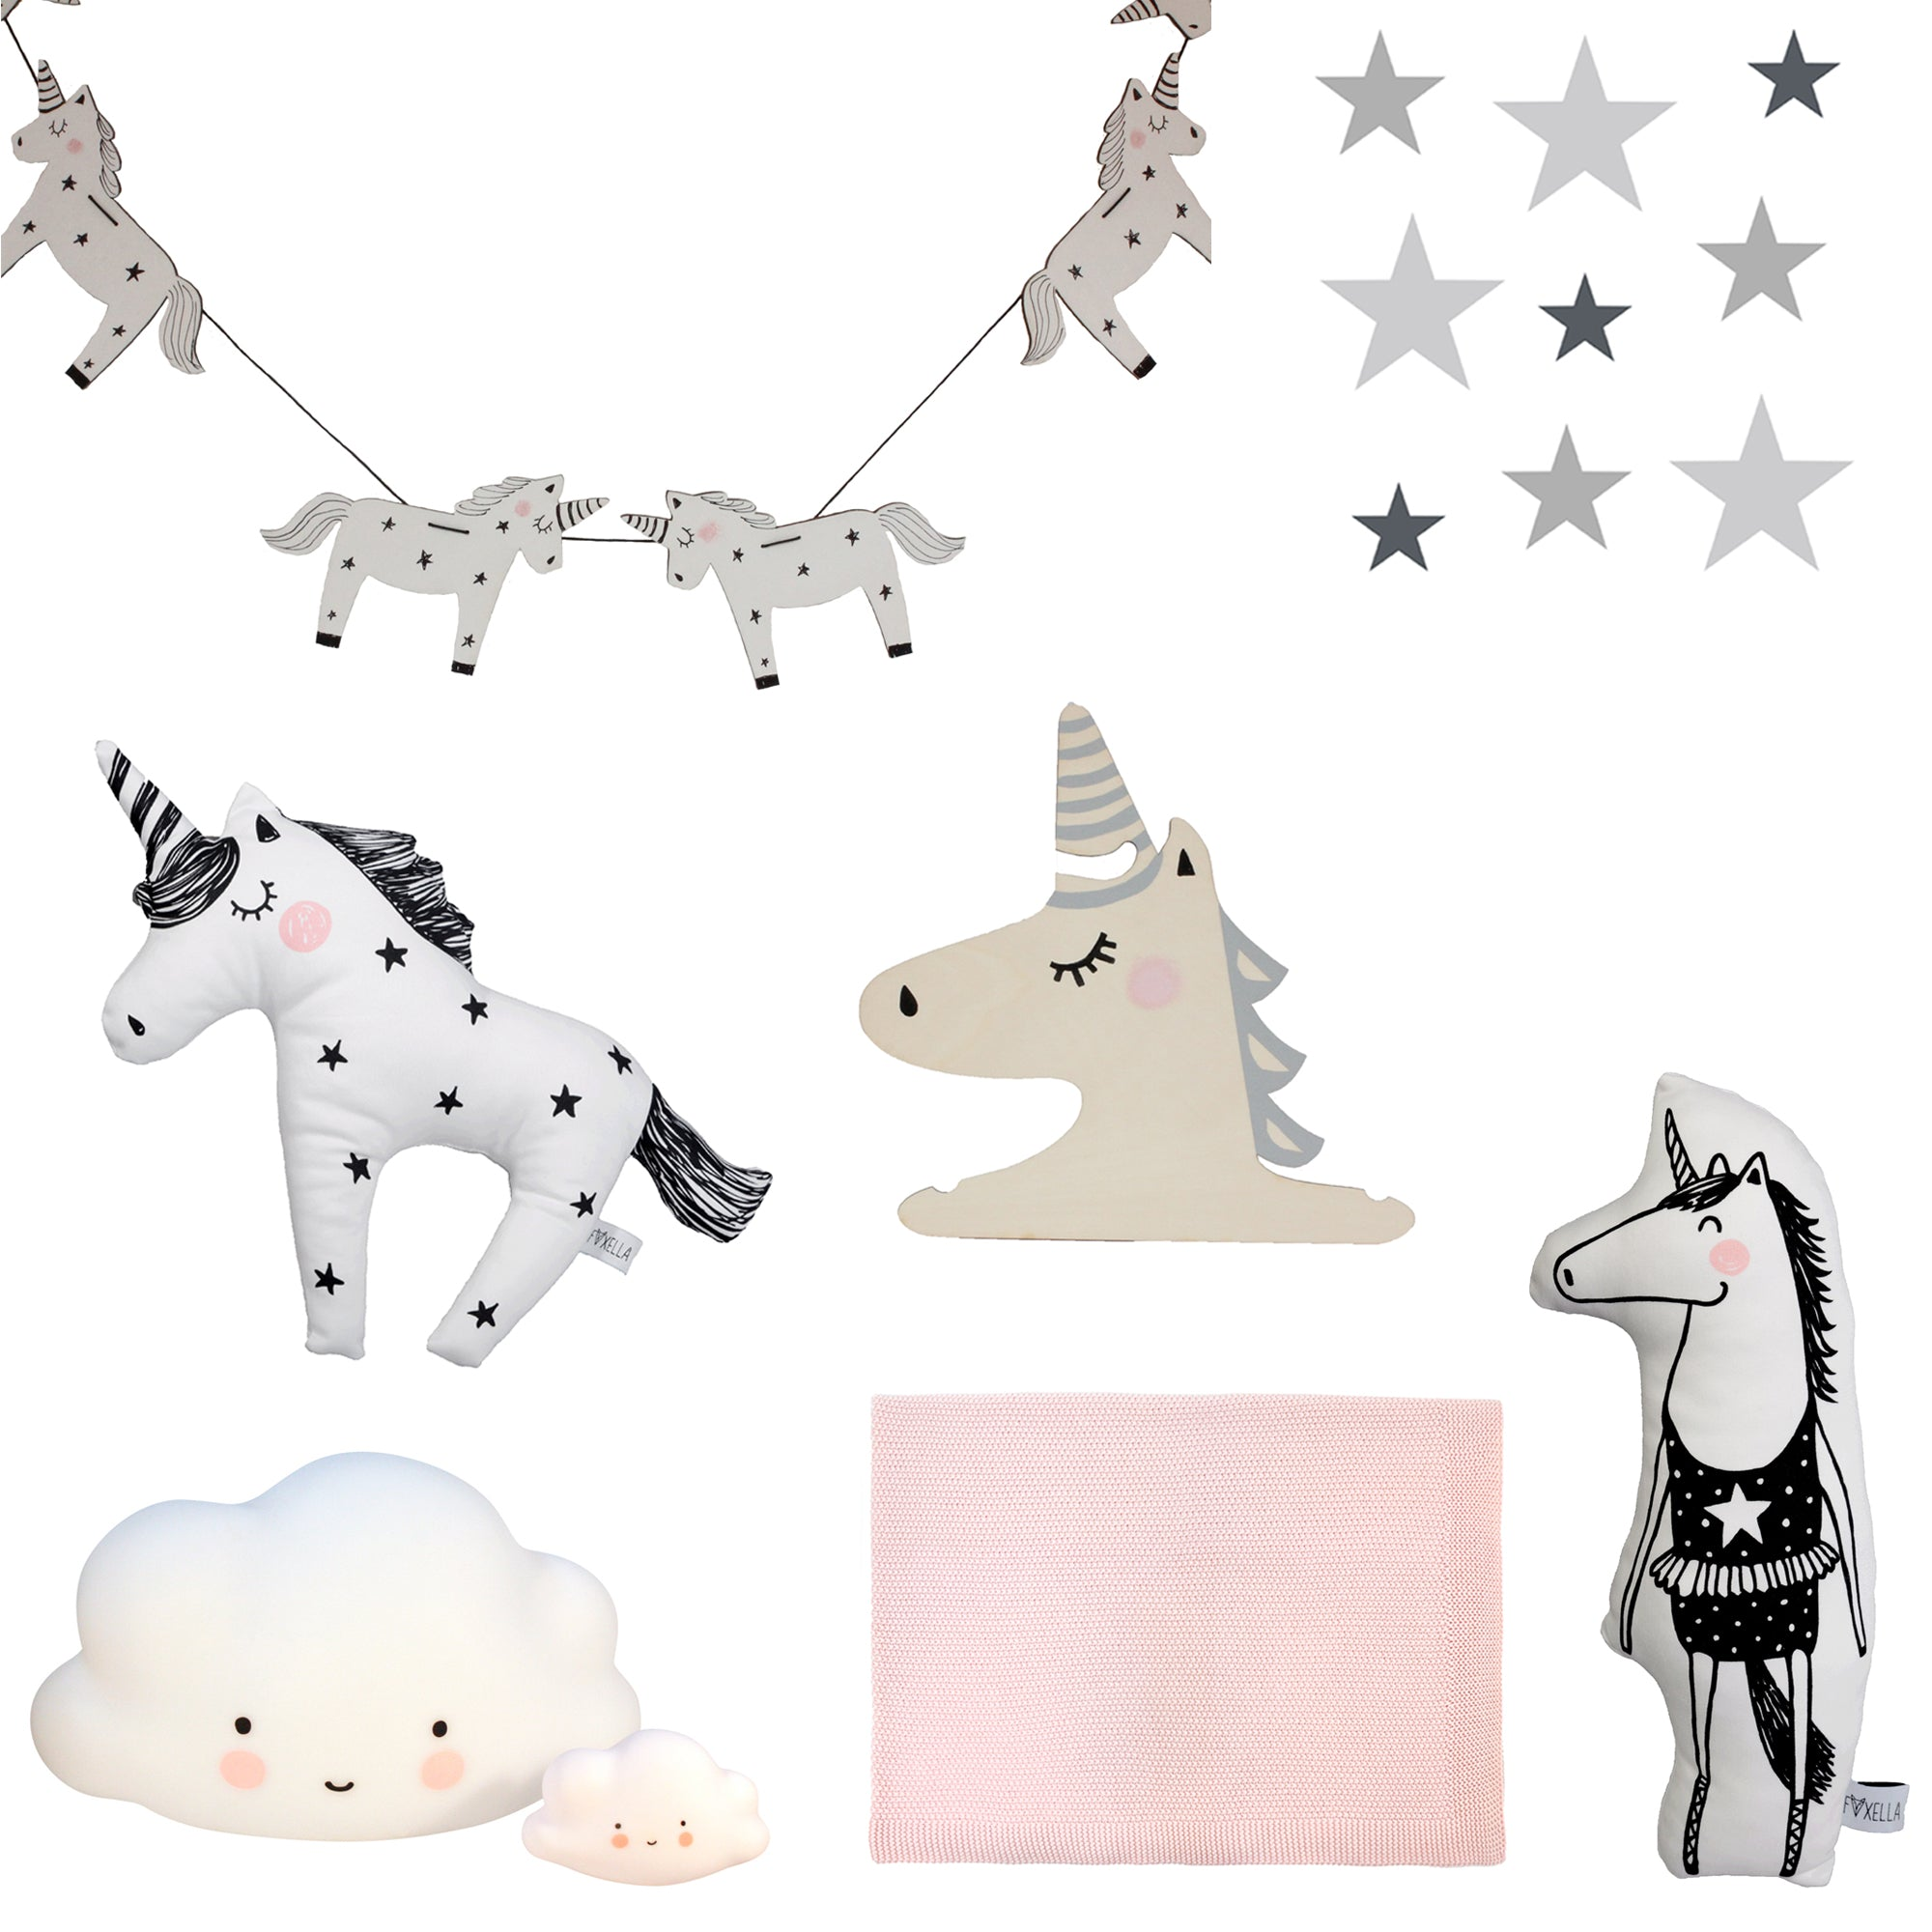 Stardust and Unicorns inspiration board by Bobby Rabbit.